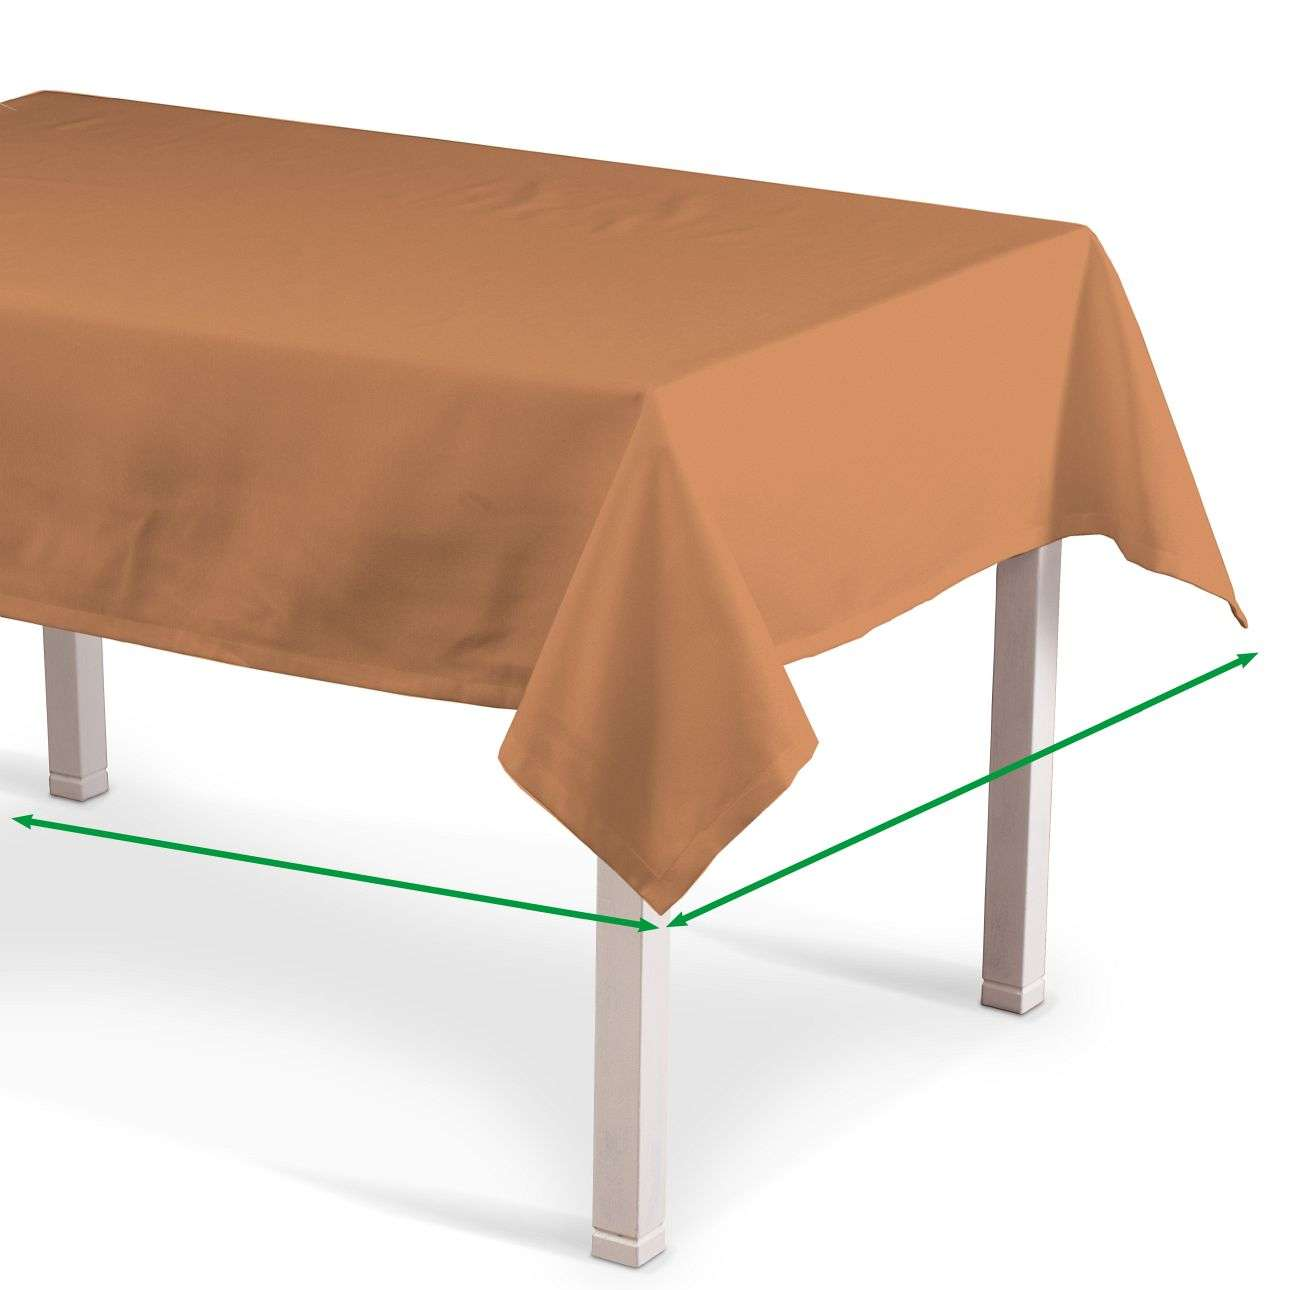 Rectangular tablecloth in collection SALE, fabric: 104-19